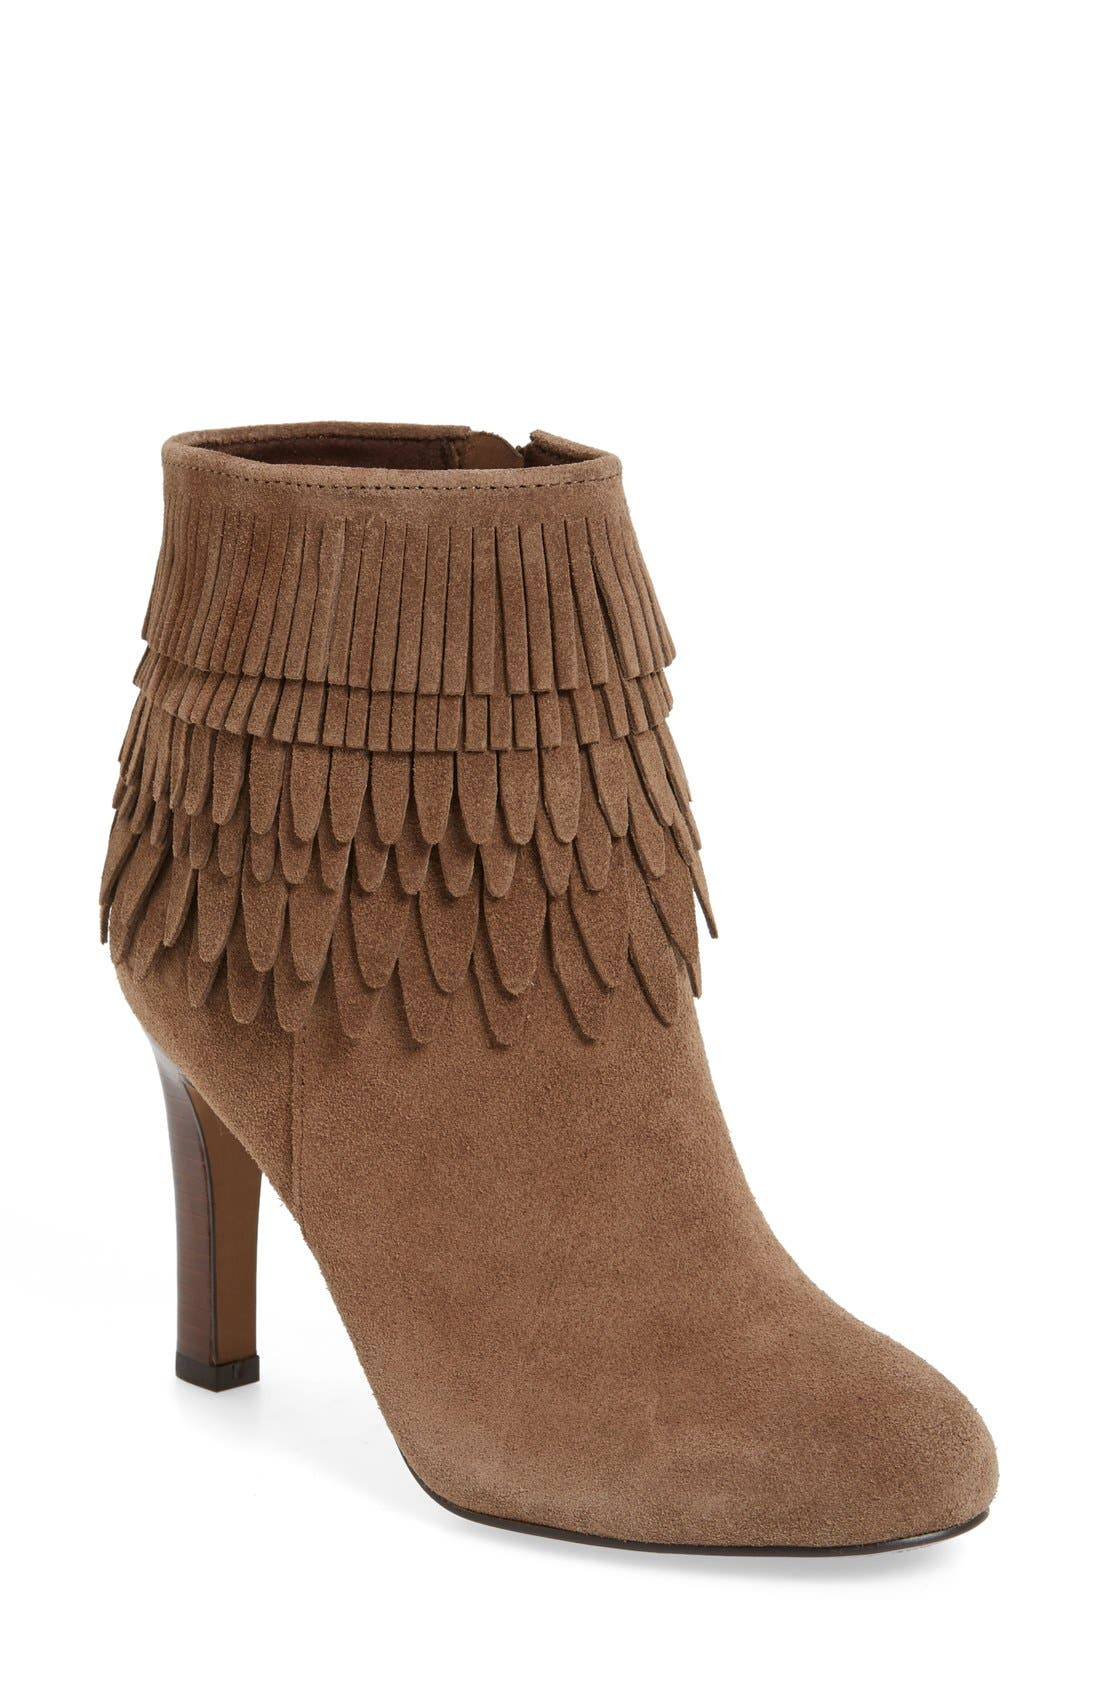 'Layton' Fringe Bootie,                         Main,                         color, Havana Brown Suede